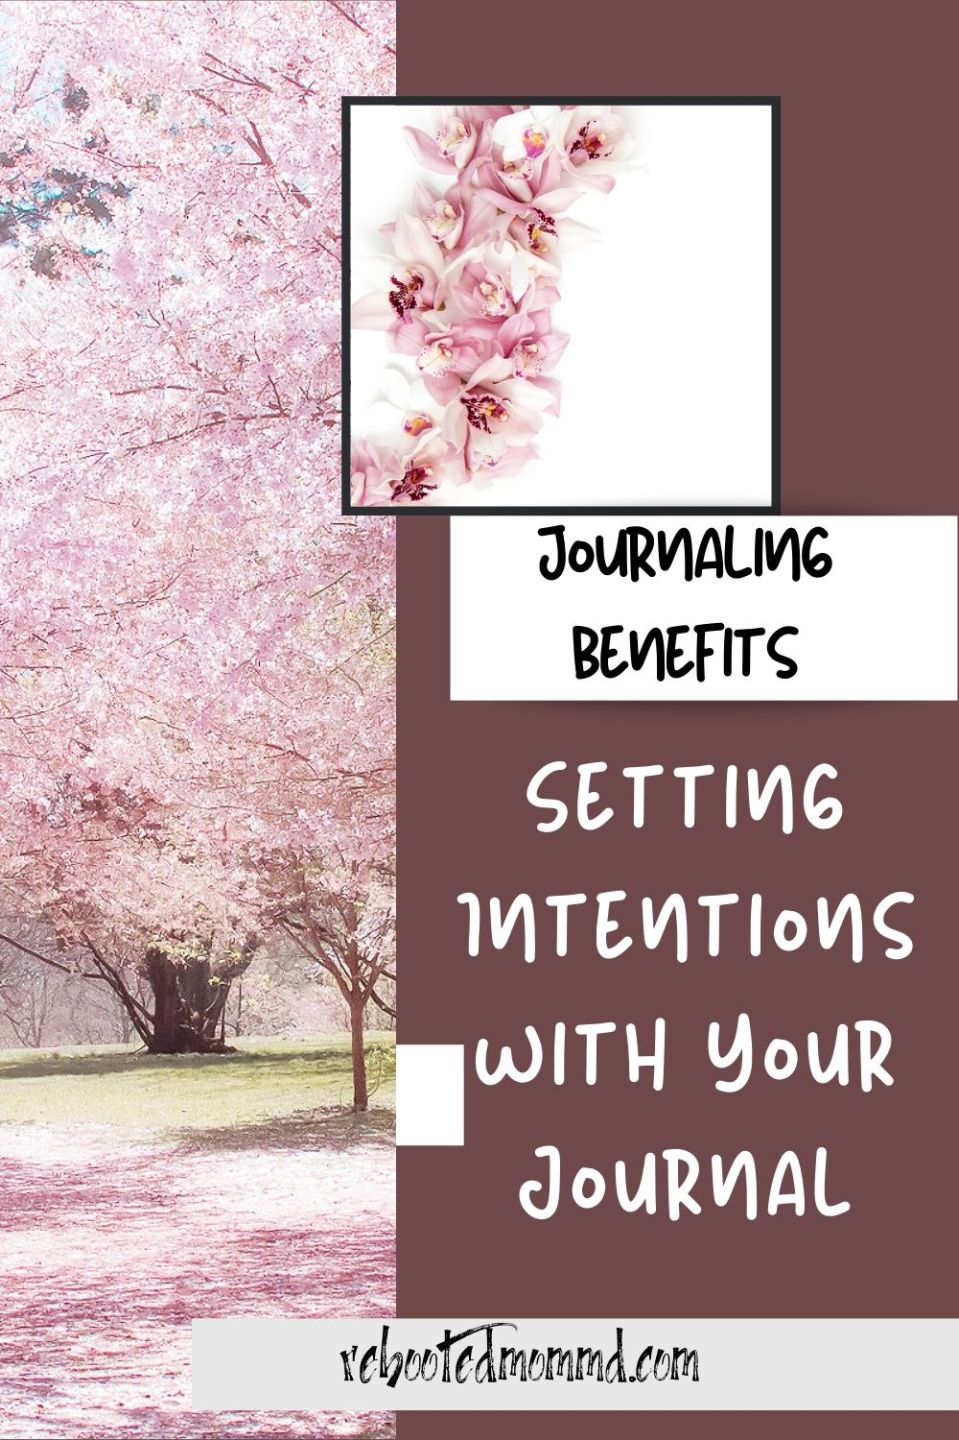 Setting Intentions with Your Journal